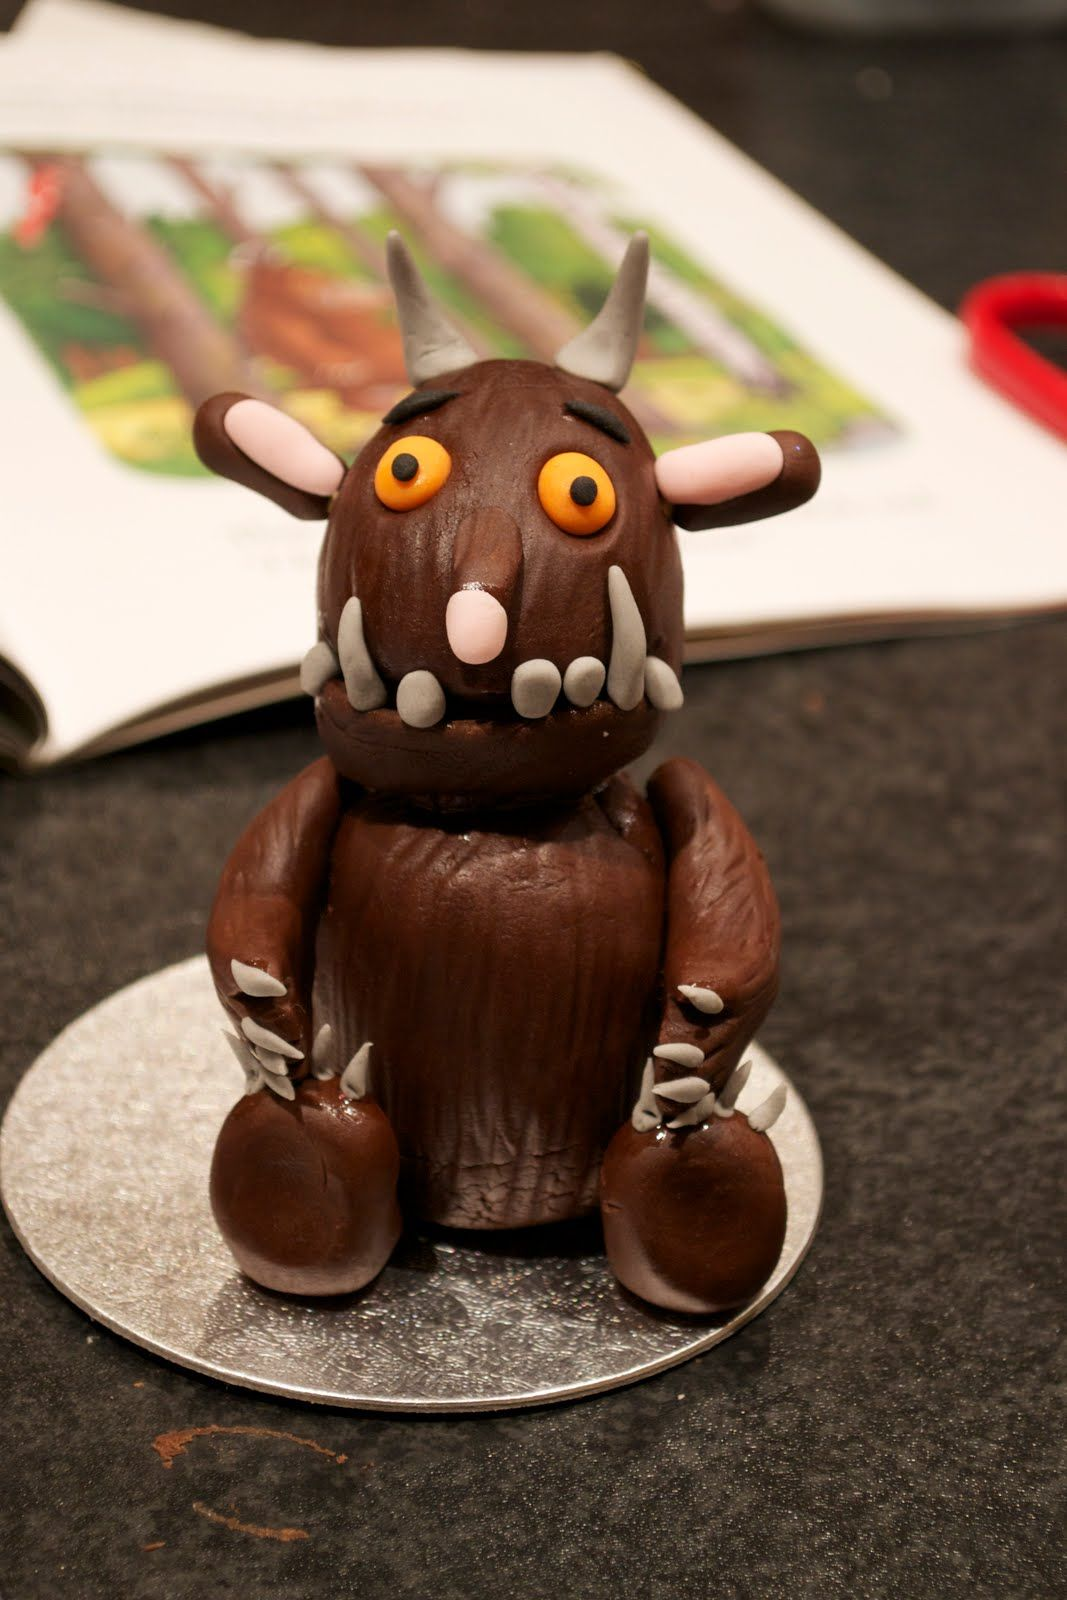 Gruffalo Party On Pinterest The Gruffalo Mushroom